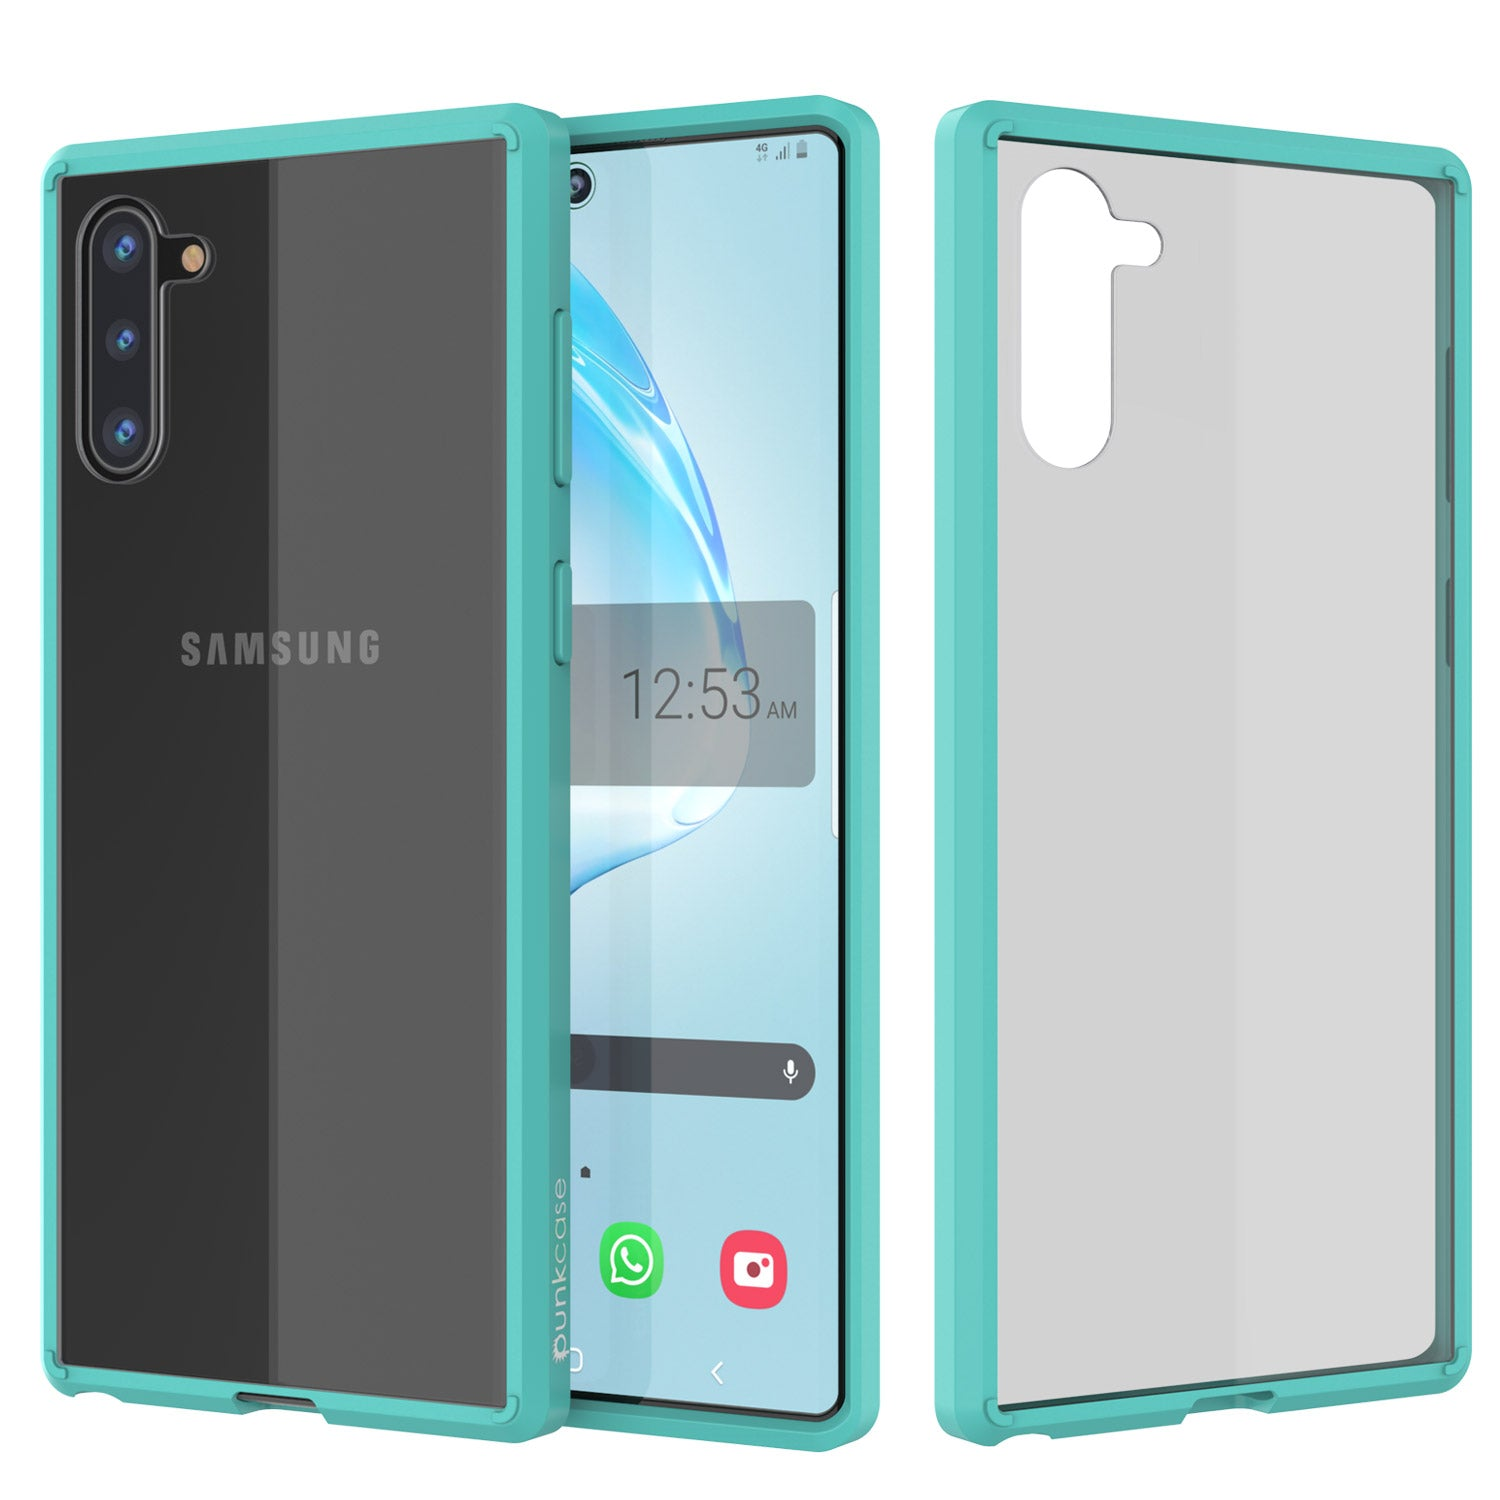 Galaxy Note 10 Punkcase Lucid-2.0 Series Slim Fit Armor Teal Case Cover